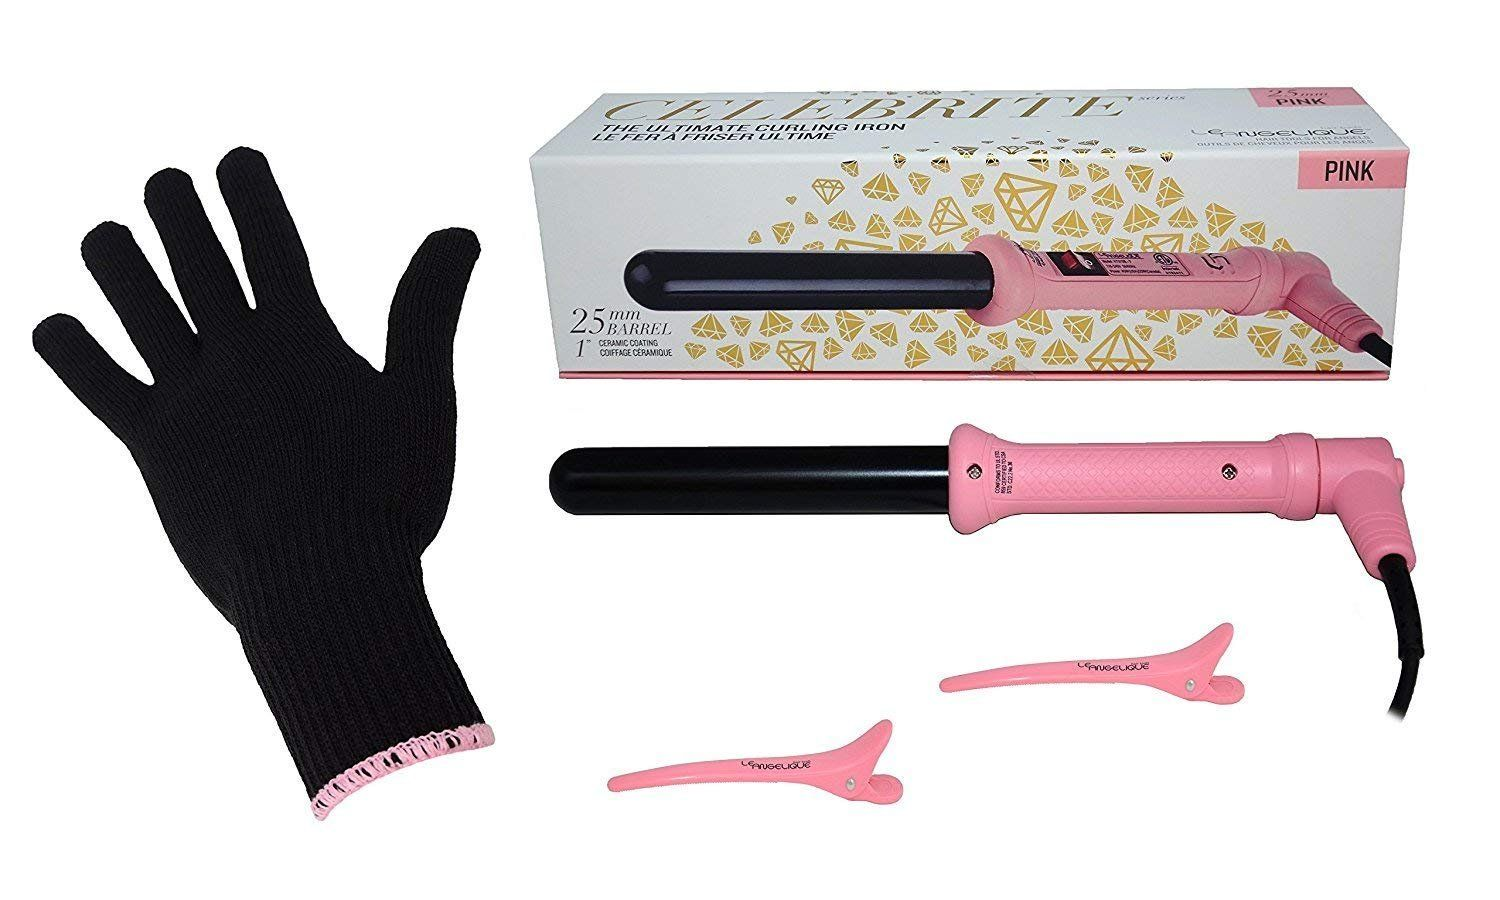 Le Angelique 1 Inch Curling Iron Wand With Glove And 2 Clips Set 450f Instant Heat Professional Hair Curler Pink Thanks Curlers Hair Curlers Pink Review